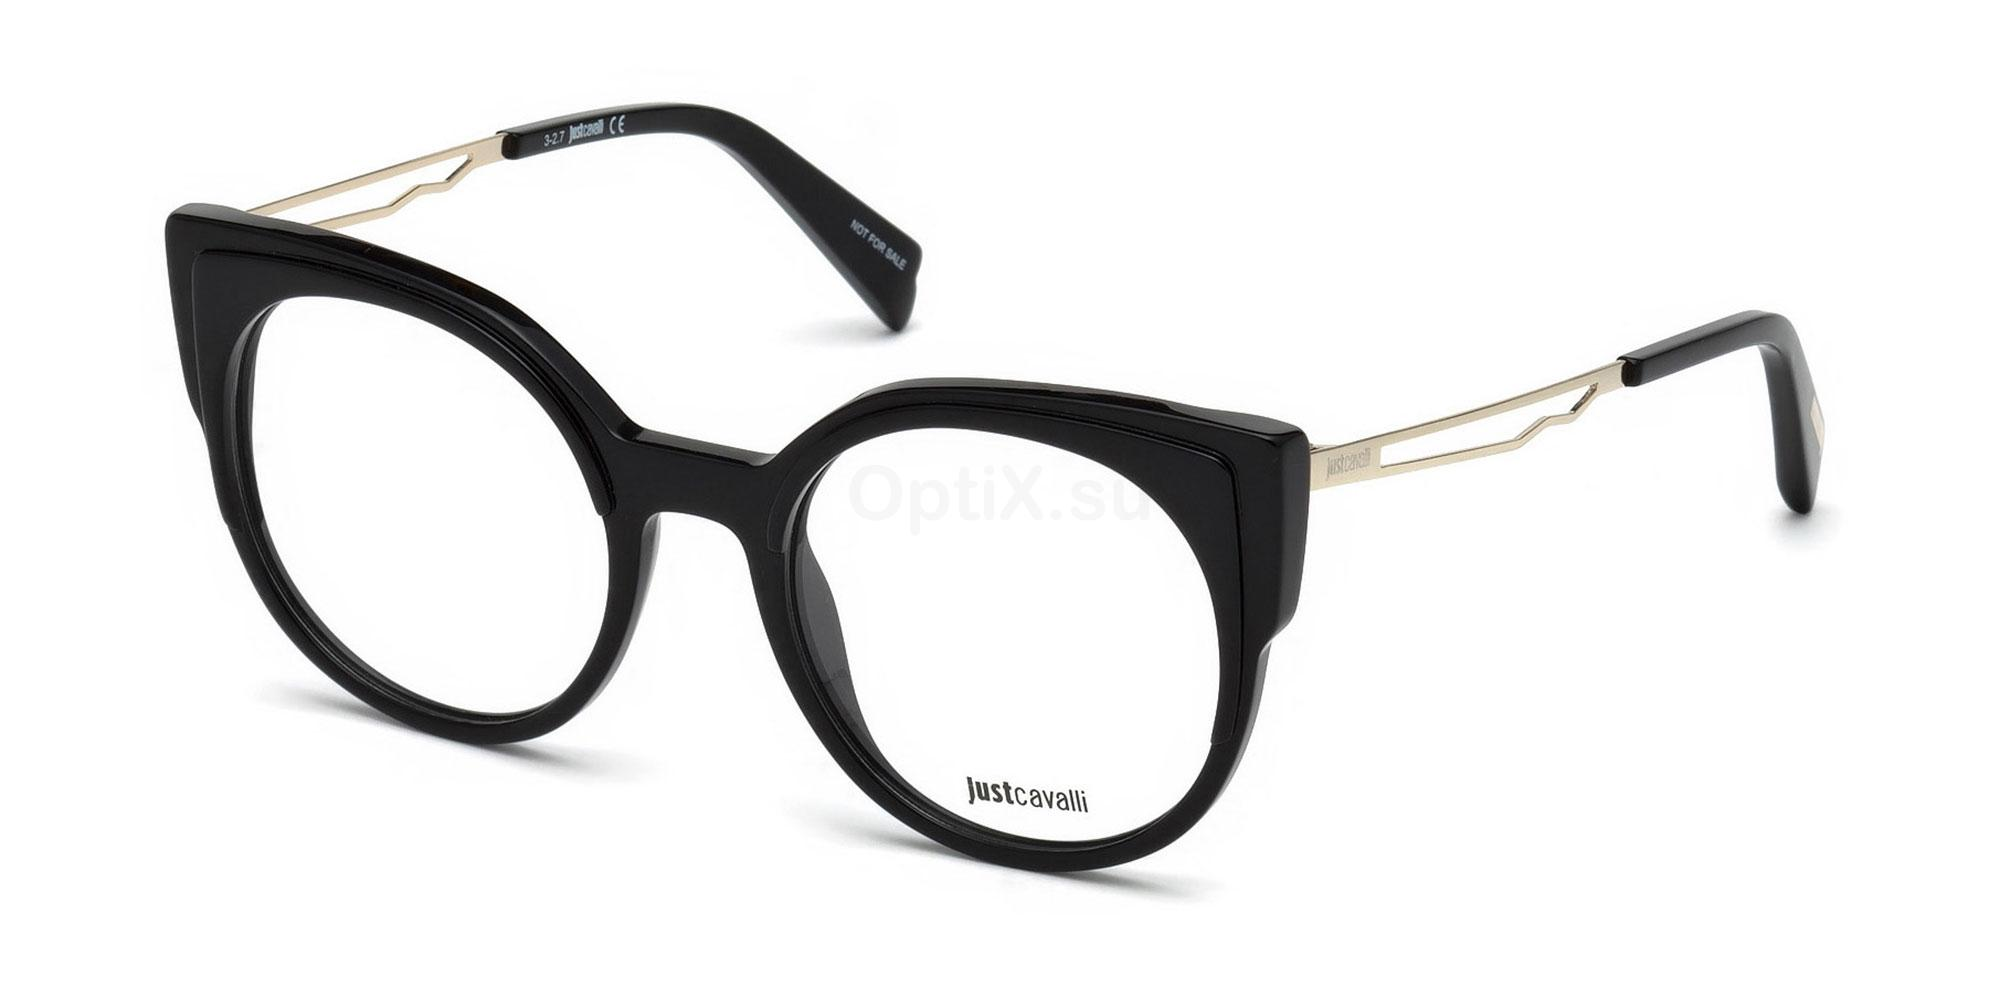 005 JC0852 Glasses, Just Cavalli